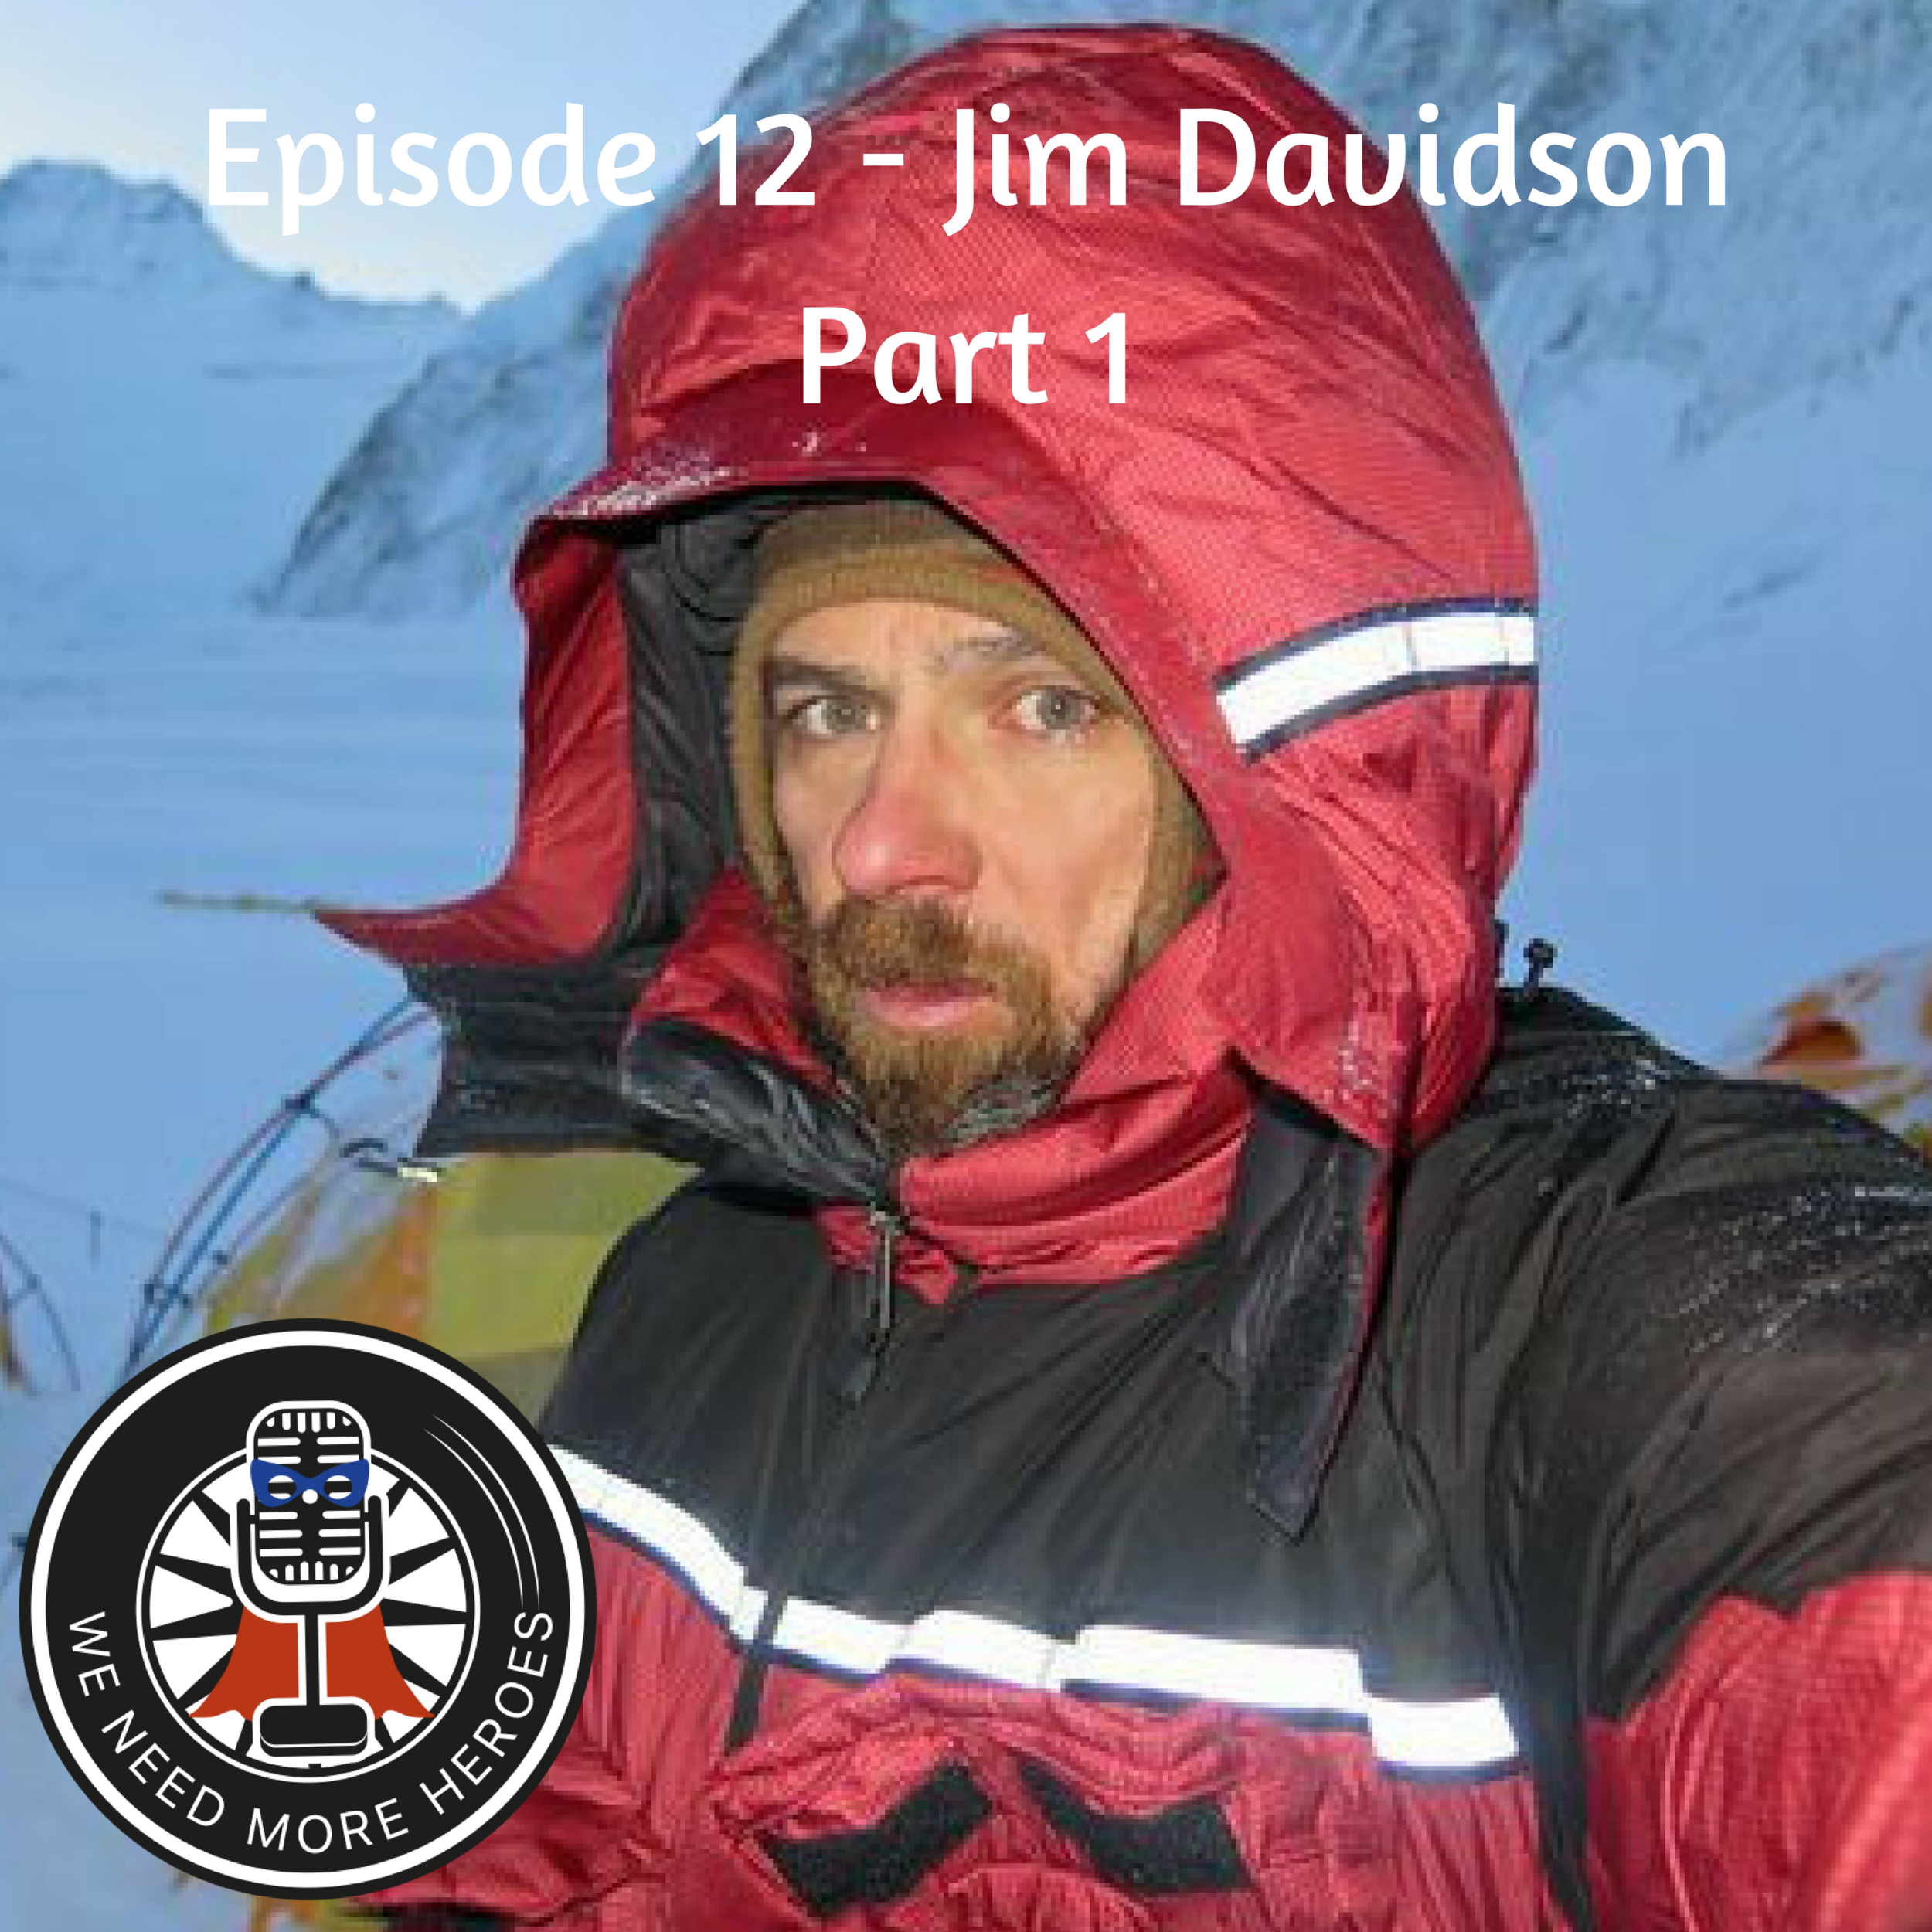 Jim Davidson episode 12 (part 1)